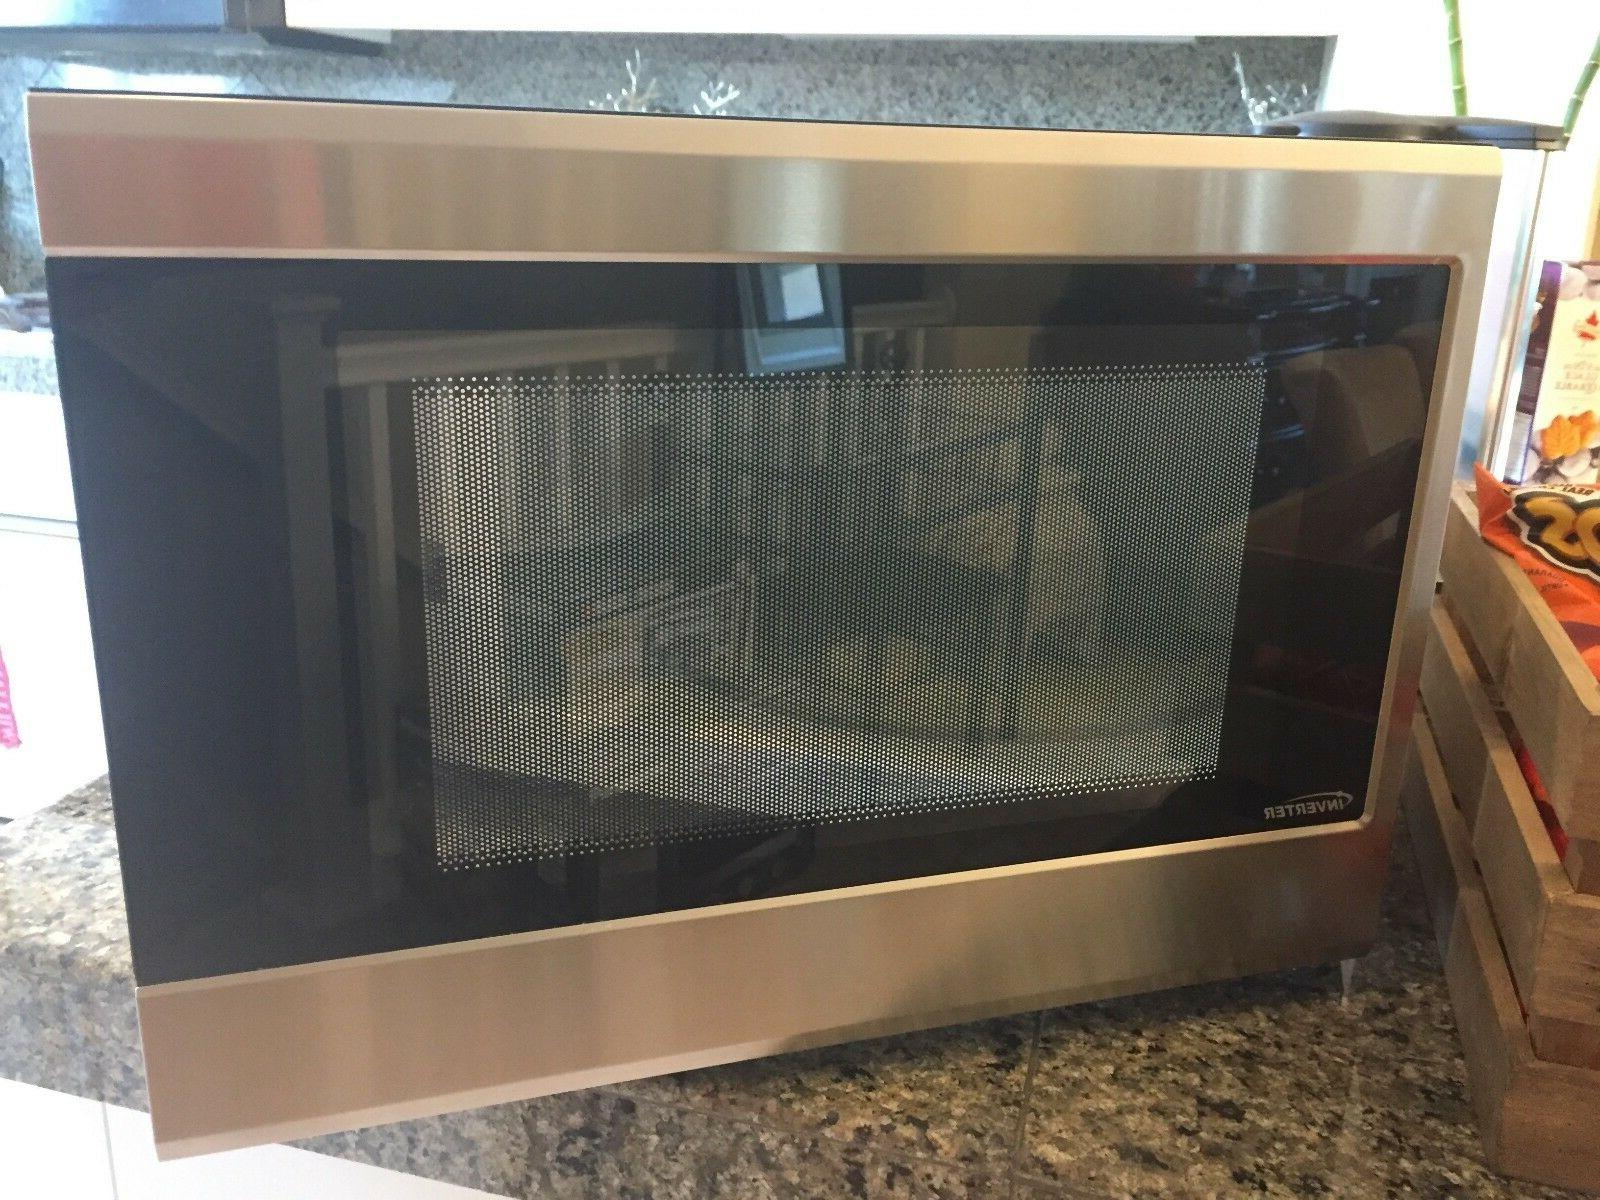 stainless steel microwave oven 1 2 cu